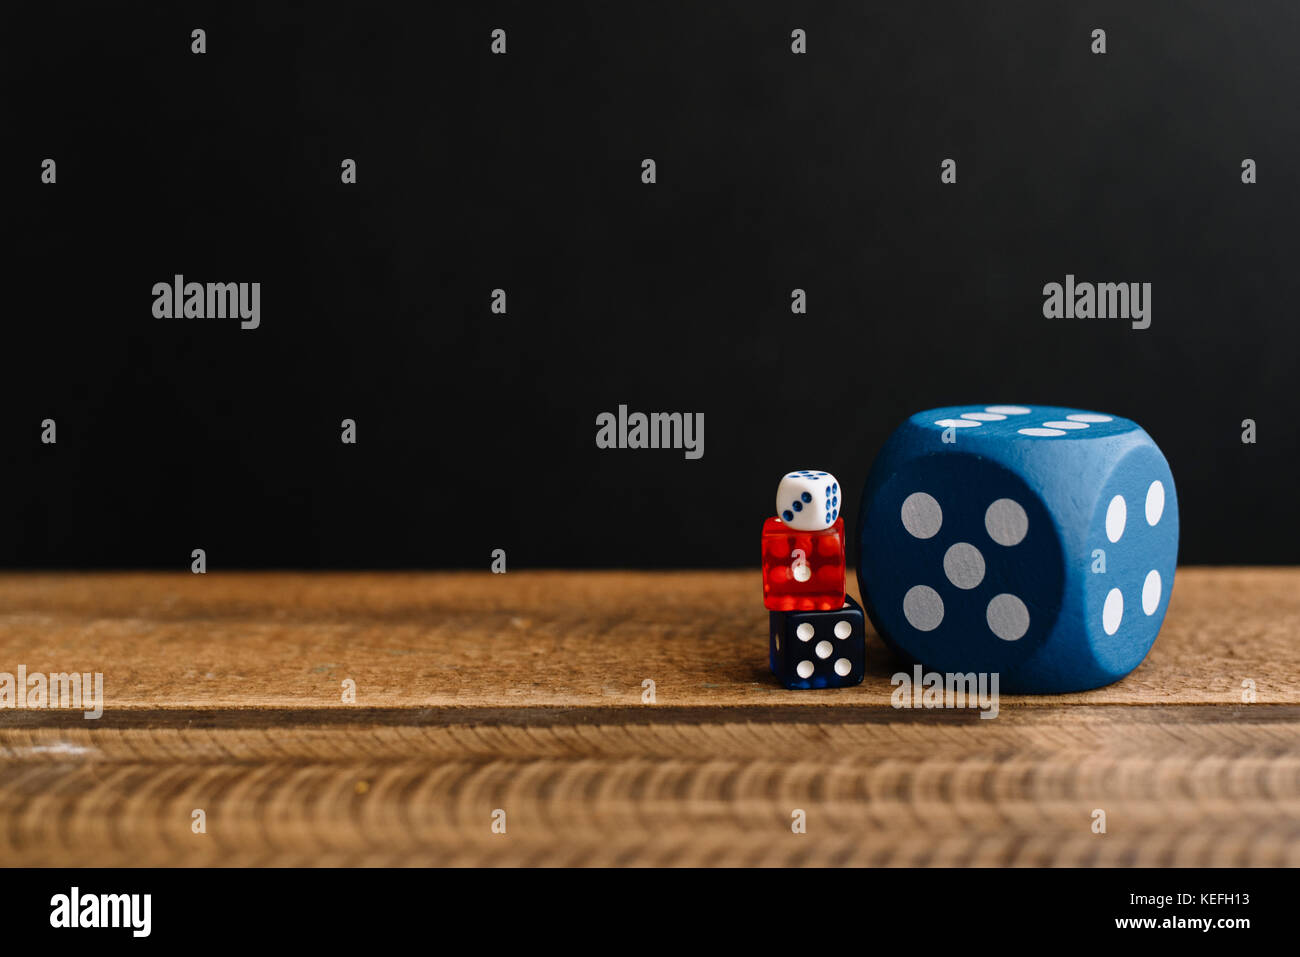 dice on a wooden table black background. - Stock Image